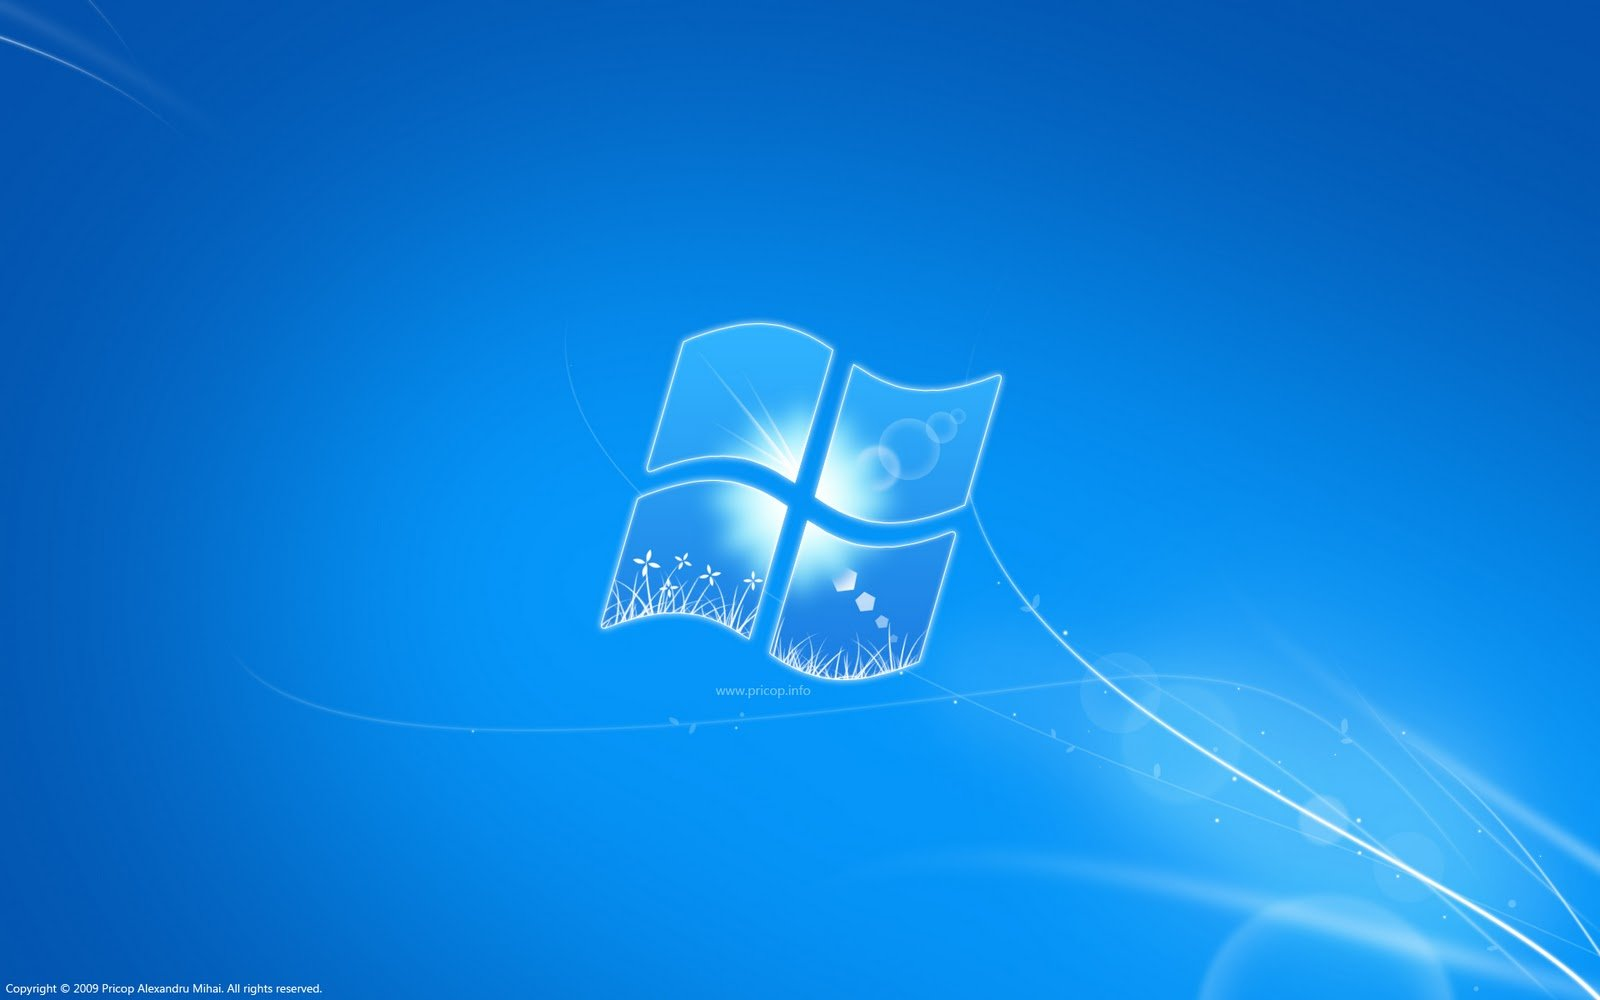 the best windows 8 wallpapers of 2011 Download New wallpapers 1600x1000